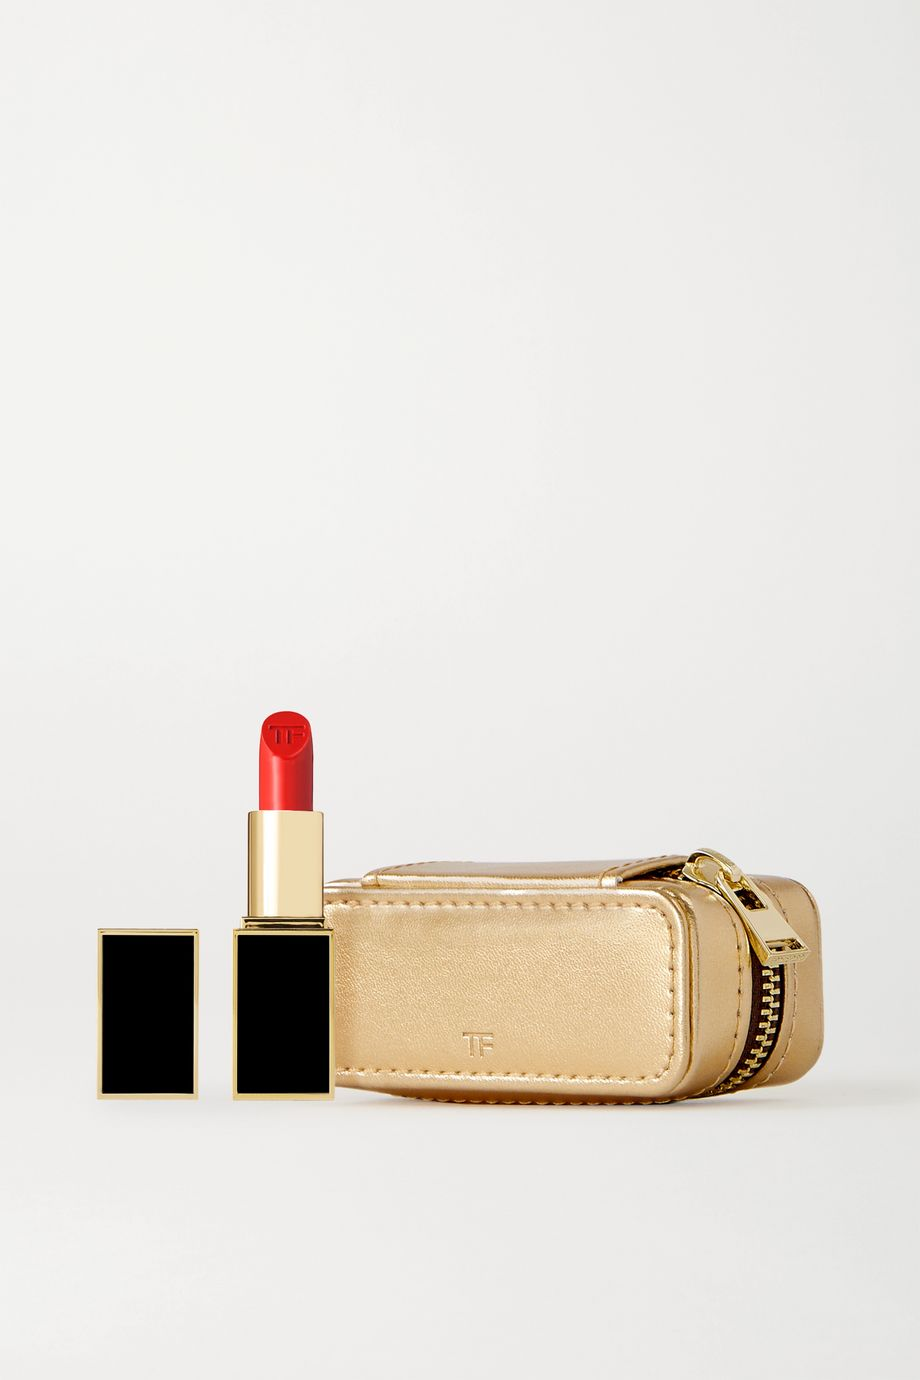 TOM FORD BEAUTY Lip Color Matte and Metallic Leather Case Set - Flame